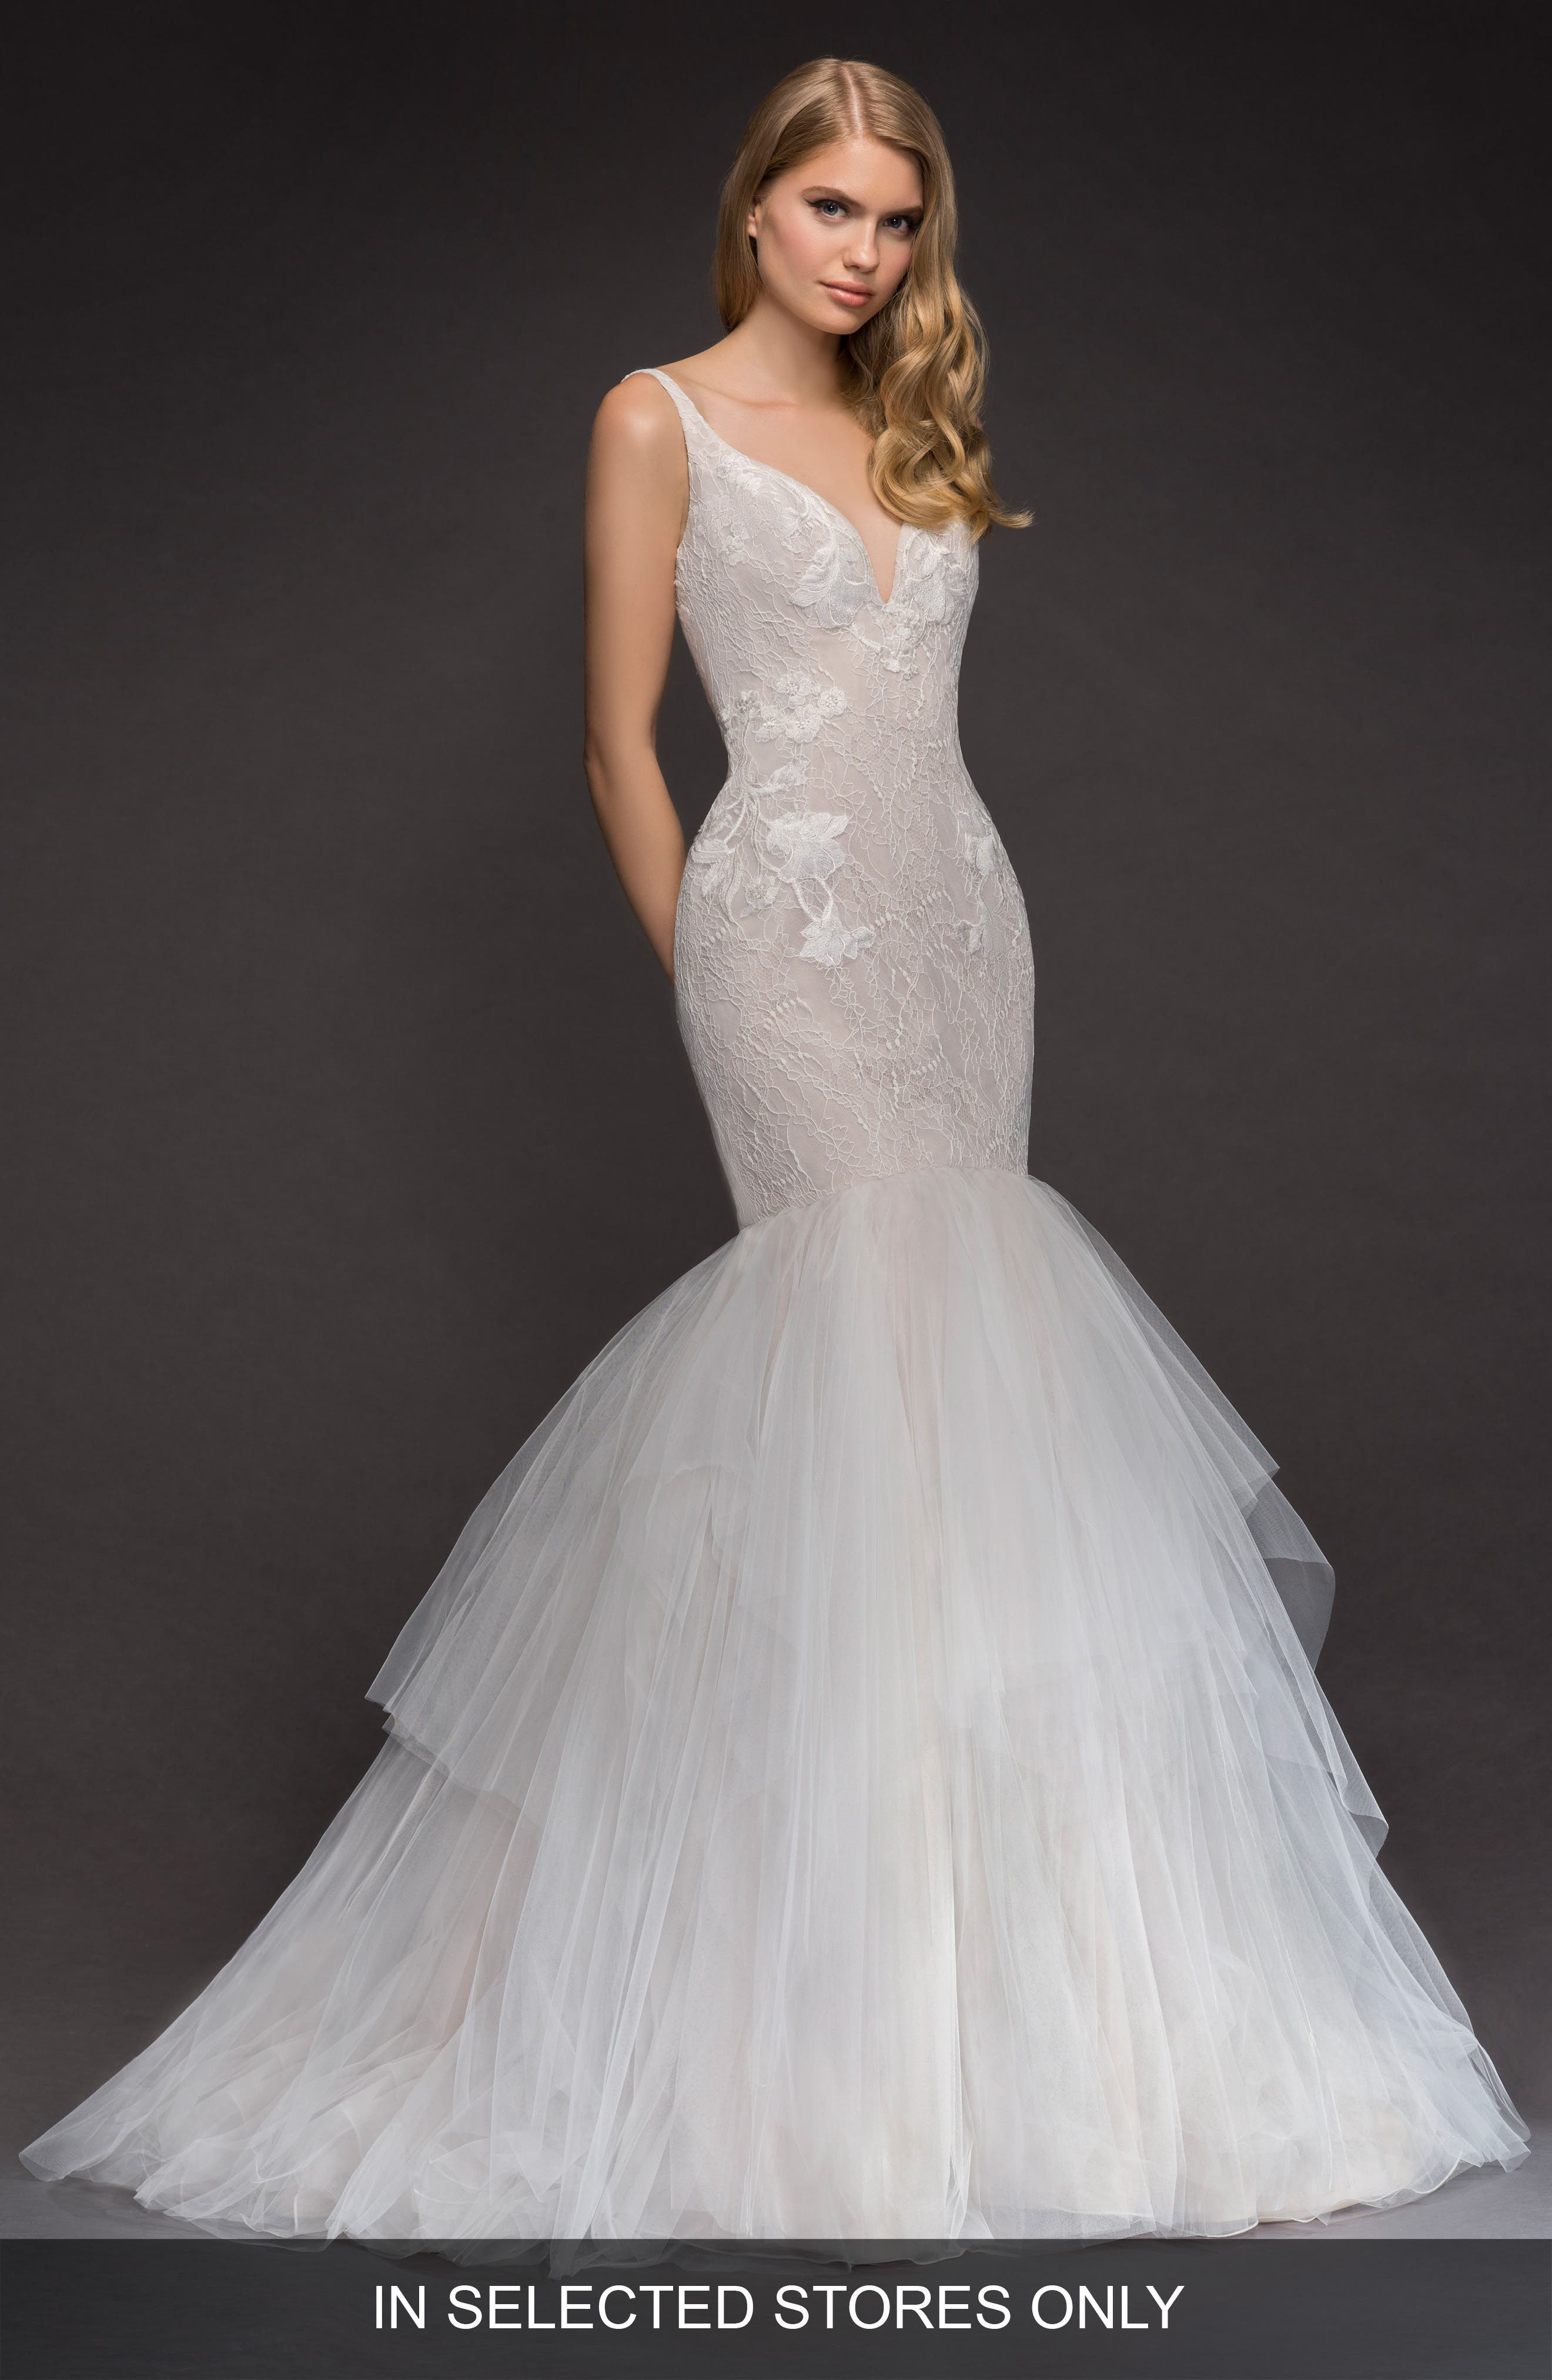 Blush By Hayley Paige Fern Lace & Tulle Mermaid Gown, Size IN STORE ONLY - Ivory